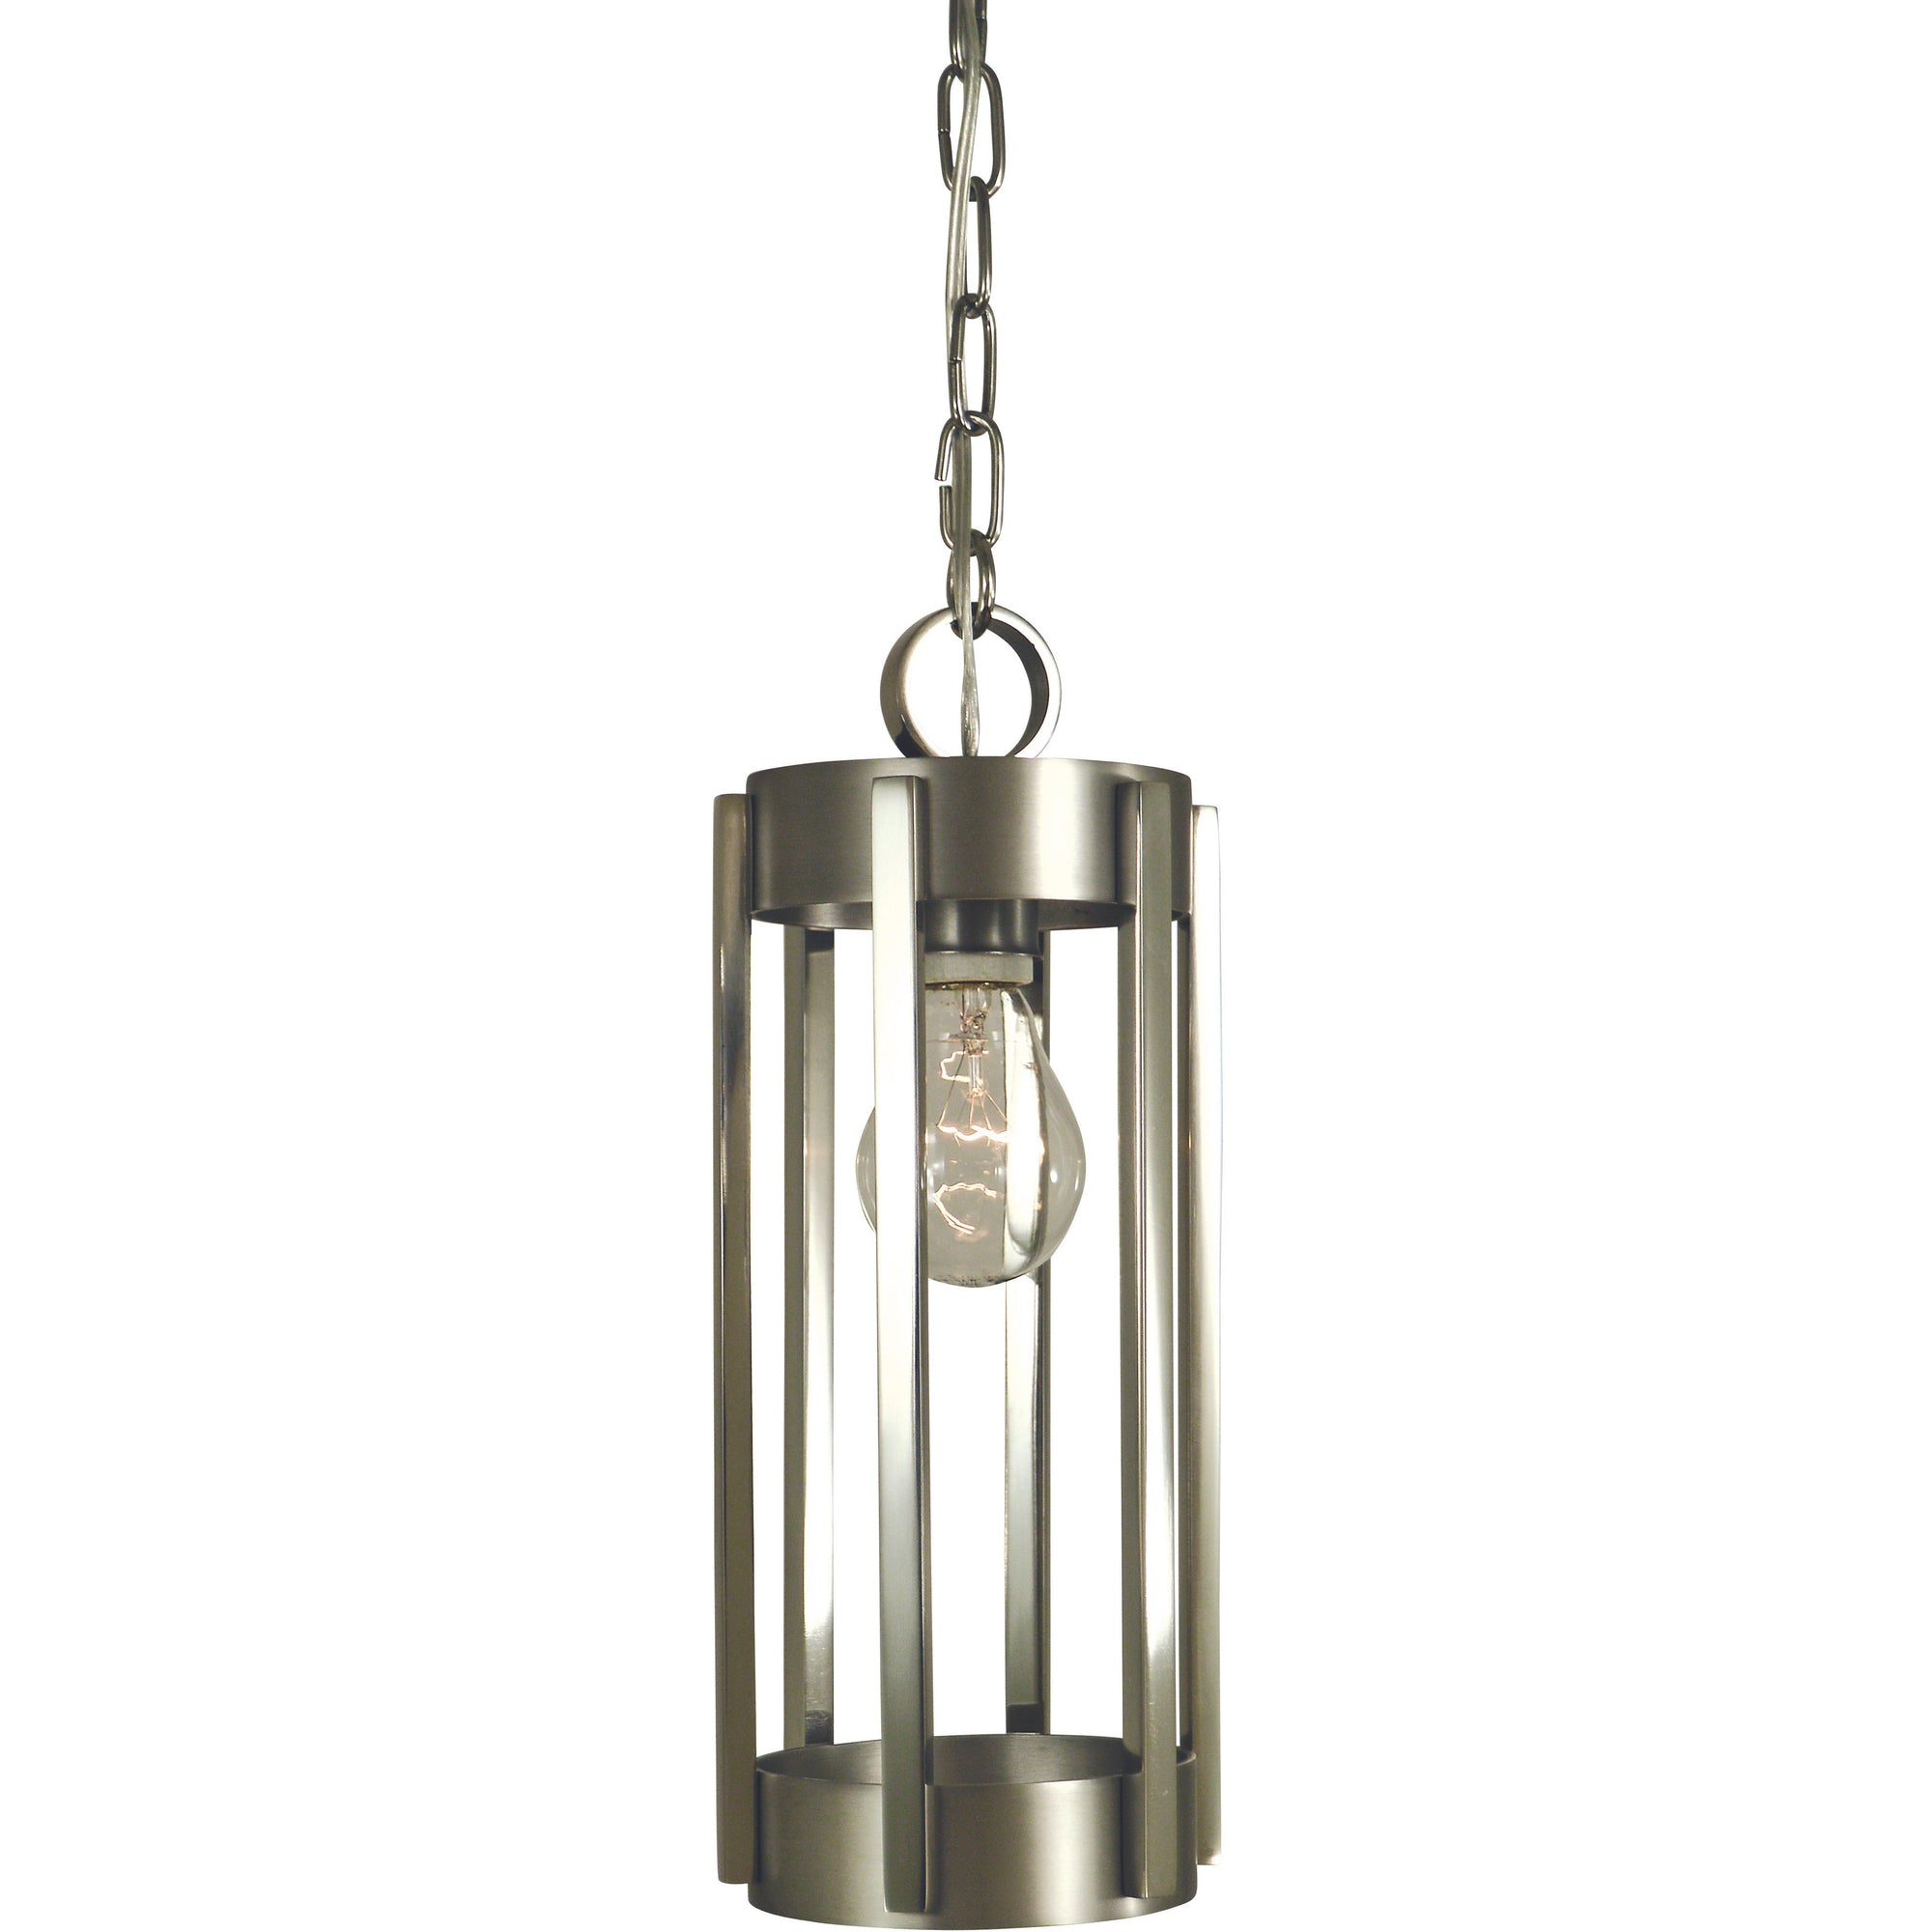 Framburg Pendants Satin Pewter with Polished Nickel 1-Light Satin Pewter/Polished Nickel Pantheon Pendant by Framburg 4661